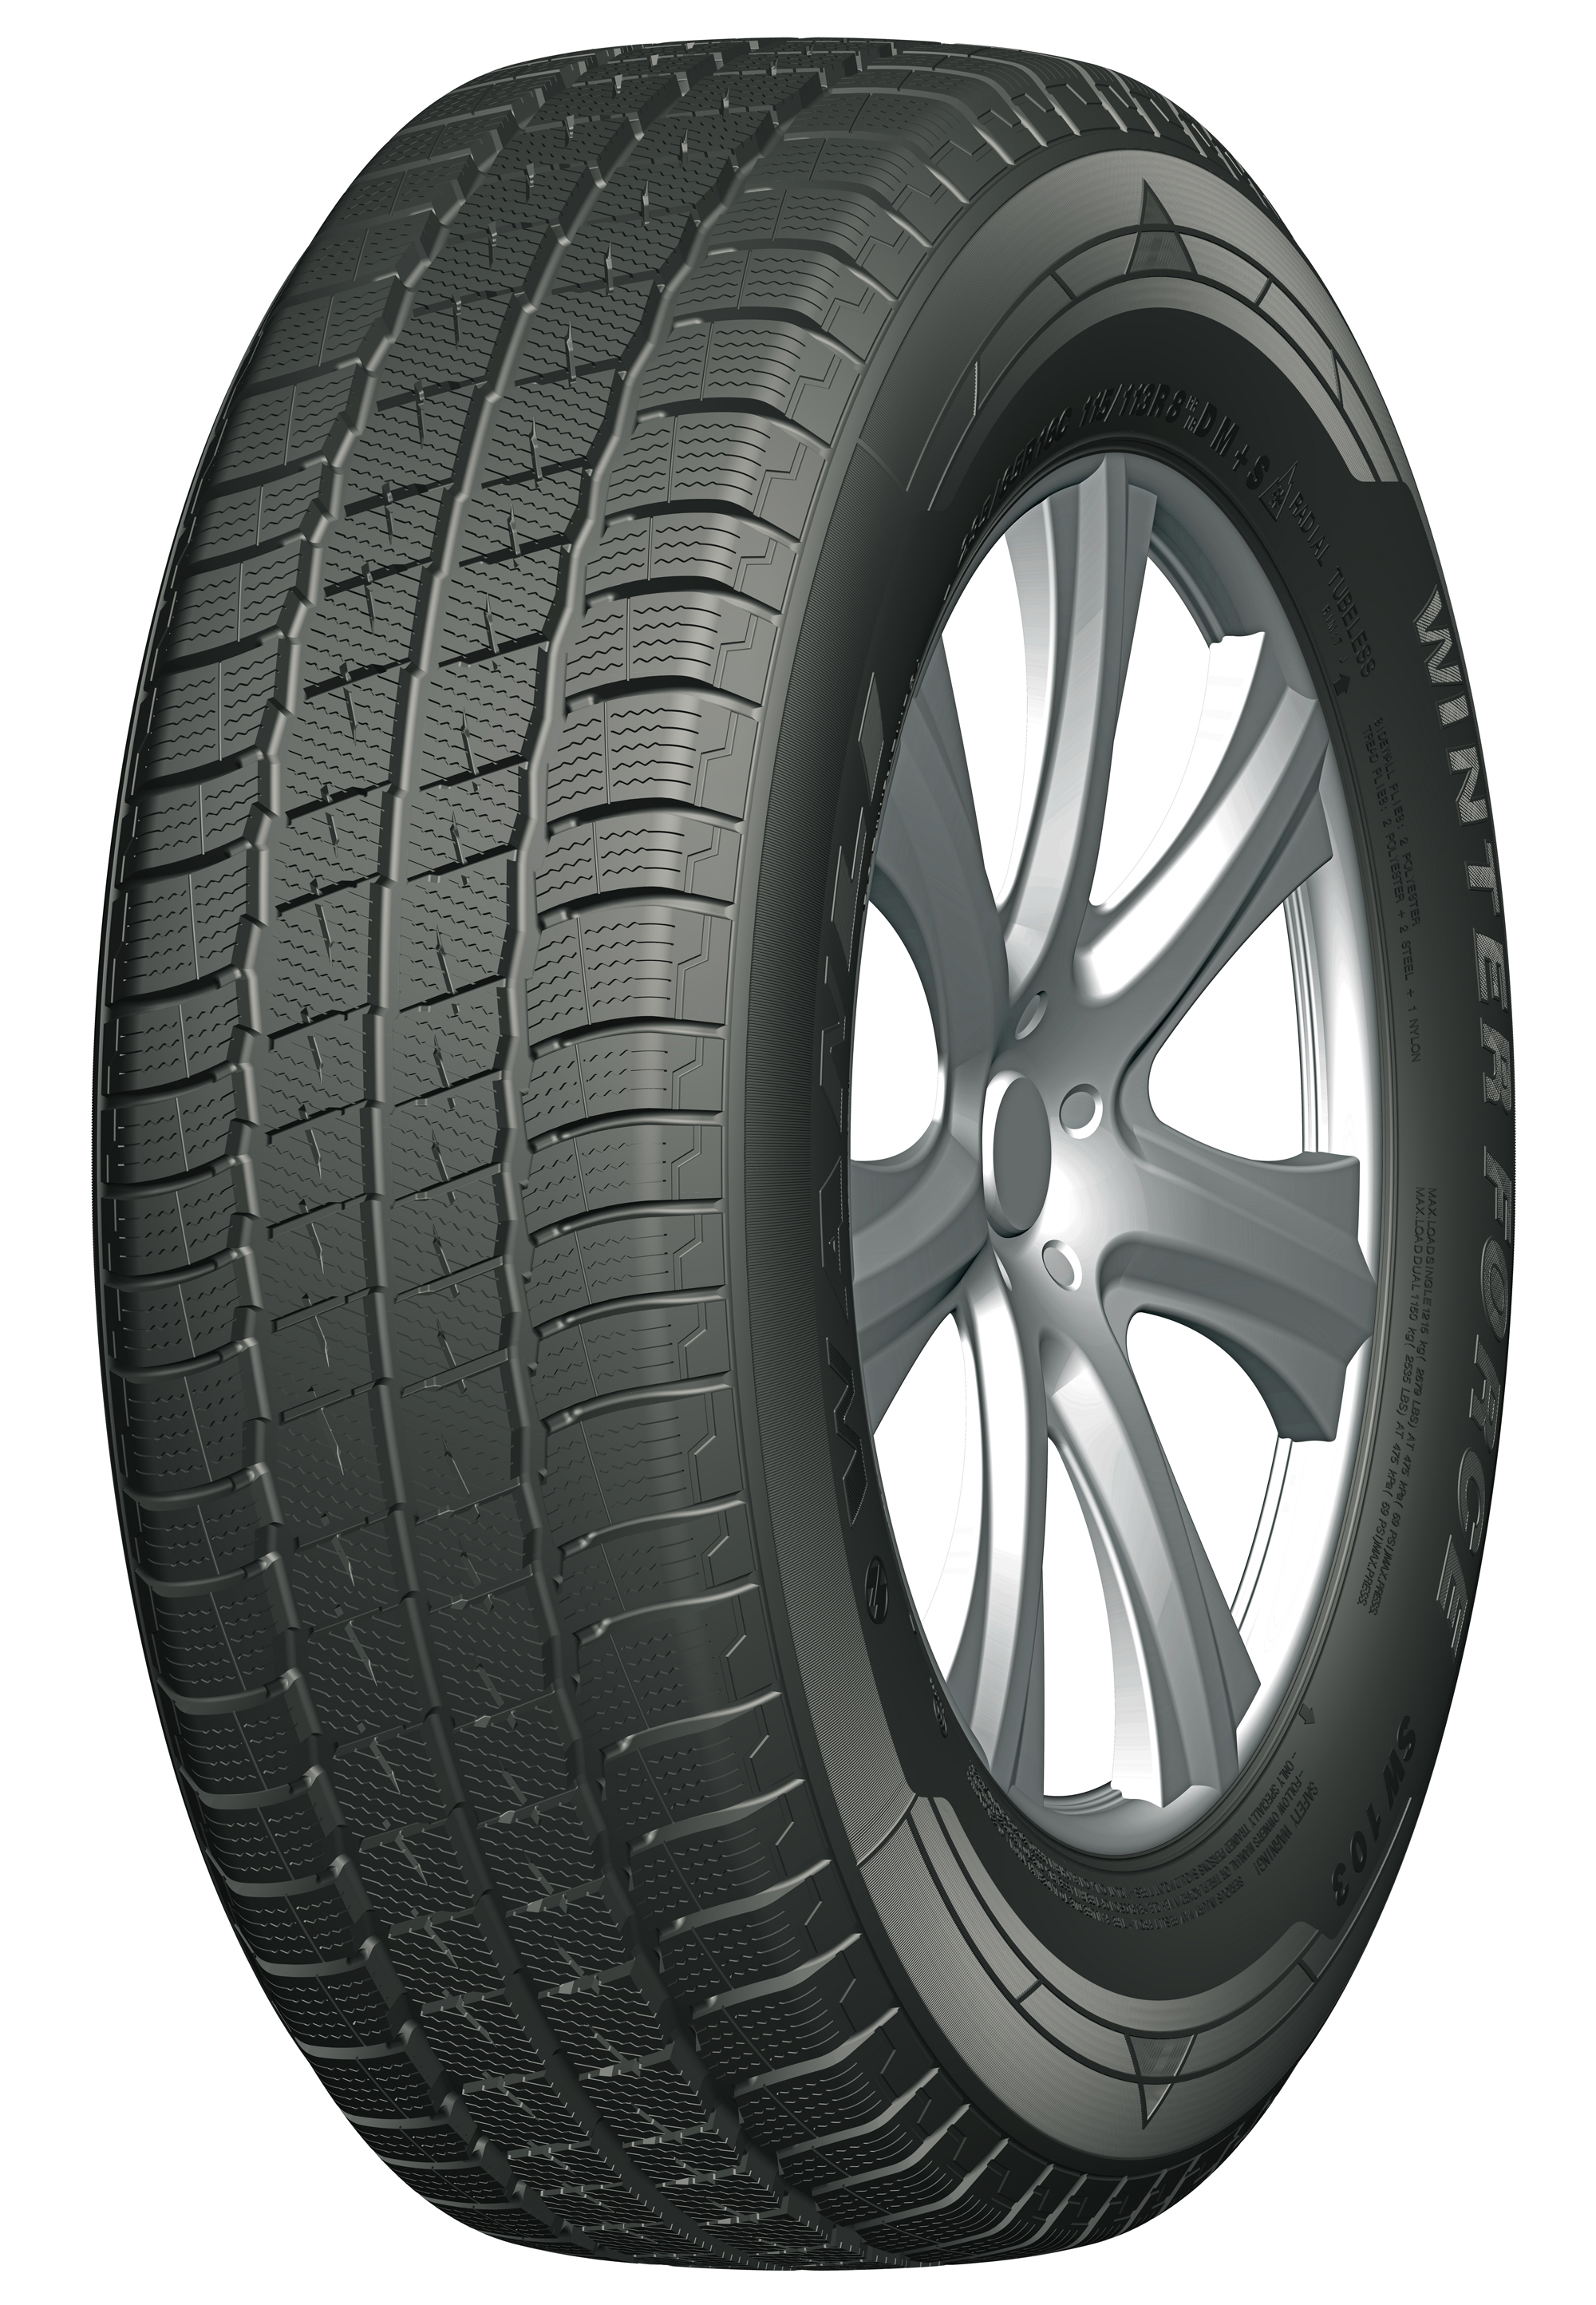 Gomme Nuove Wanli 205/65 R16C 107R SW103 M+S pneumatici nuovi Invernale